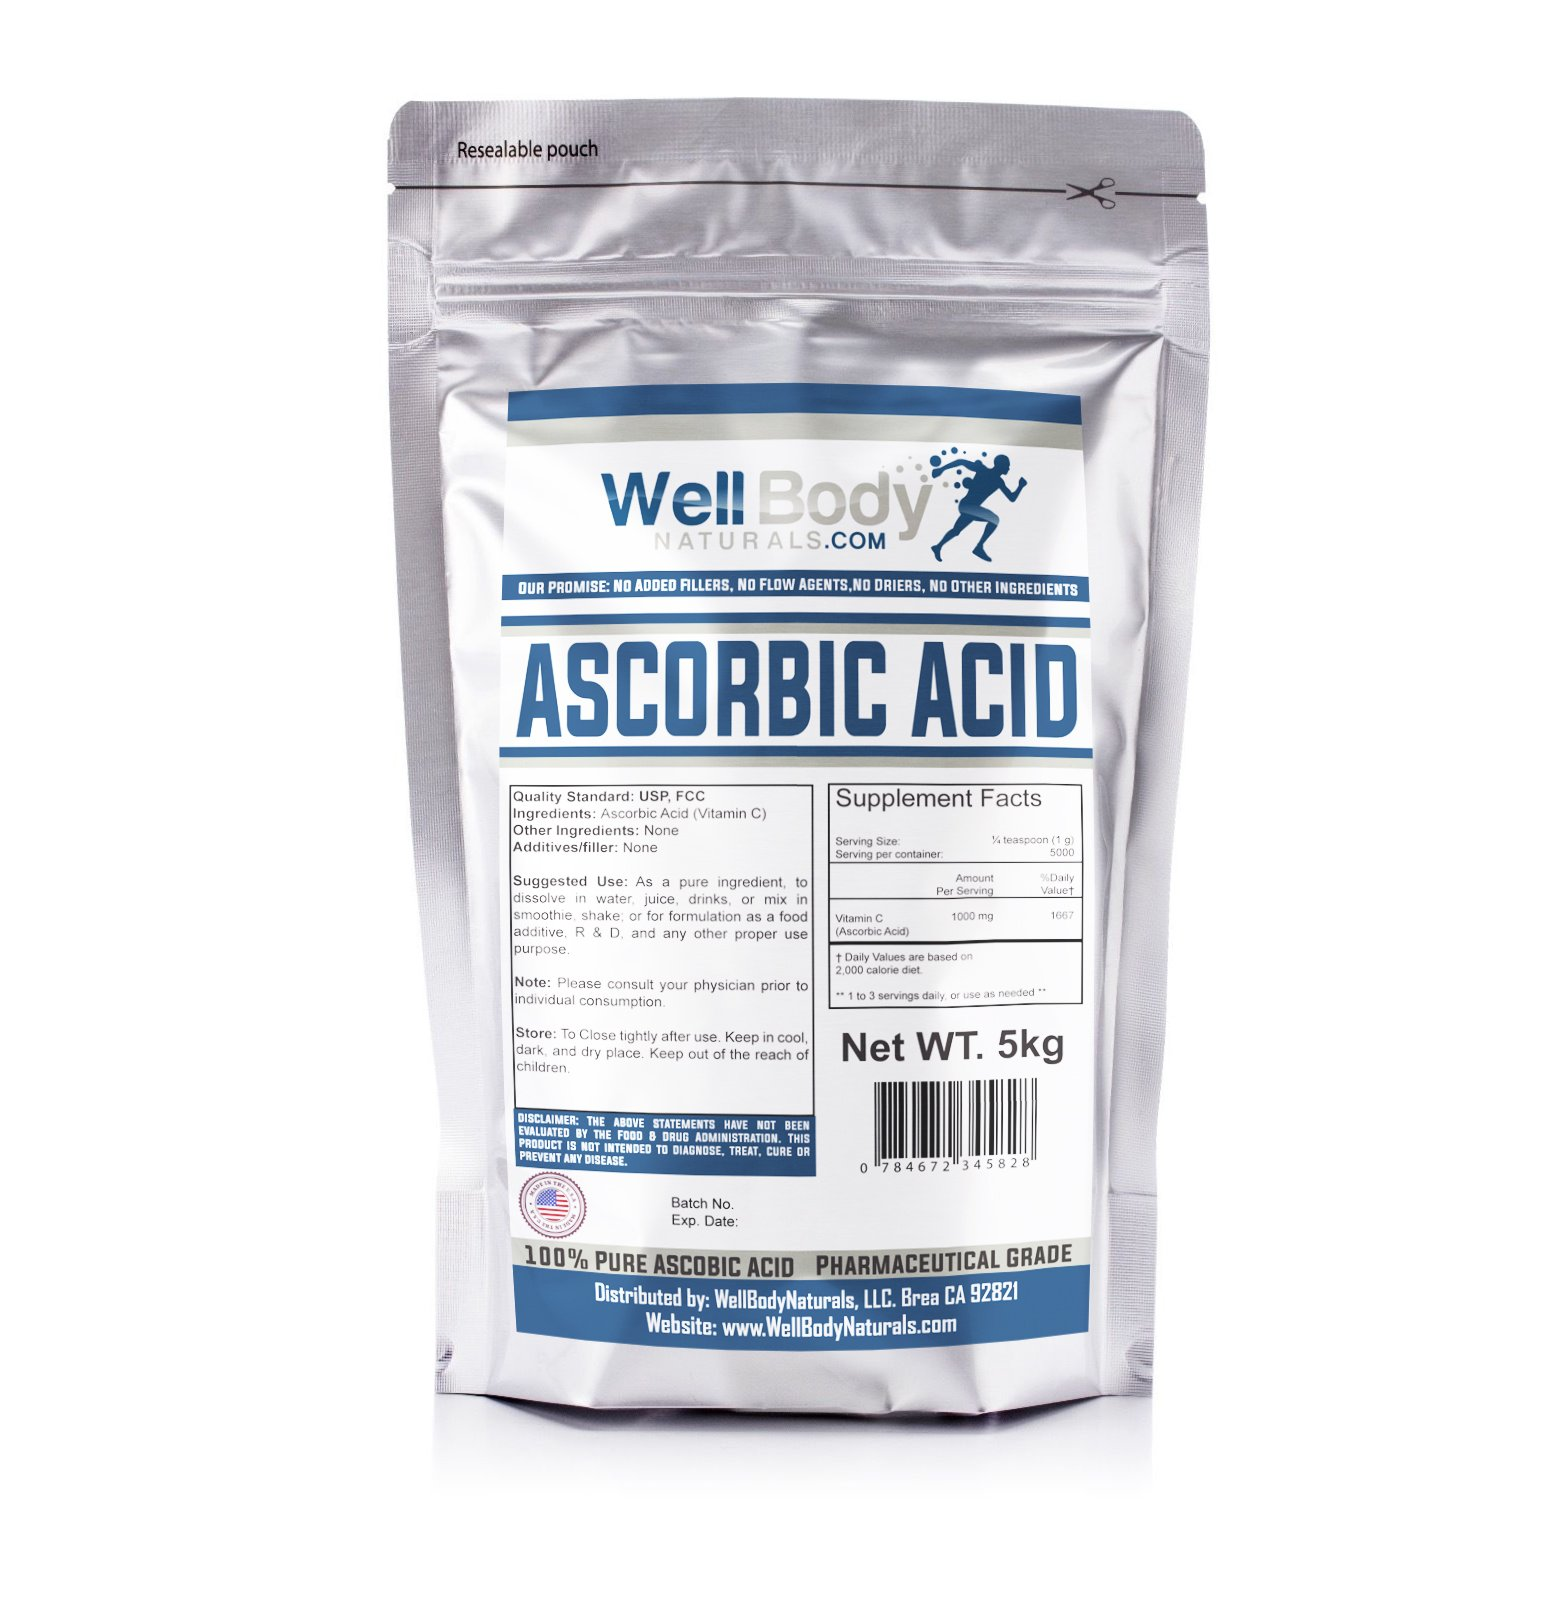 WellBodyNaturals Pure Ascorbic Acid (Vitamin C) Powder (5000 grams)